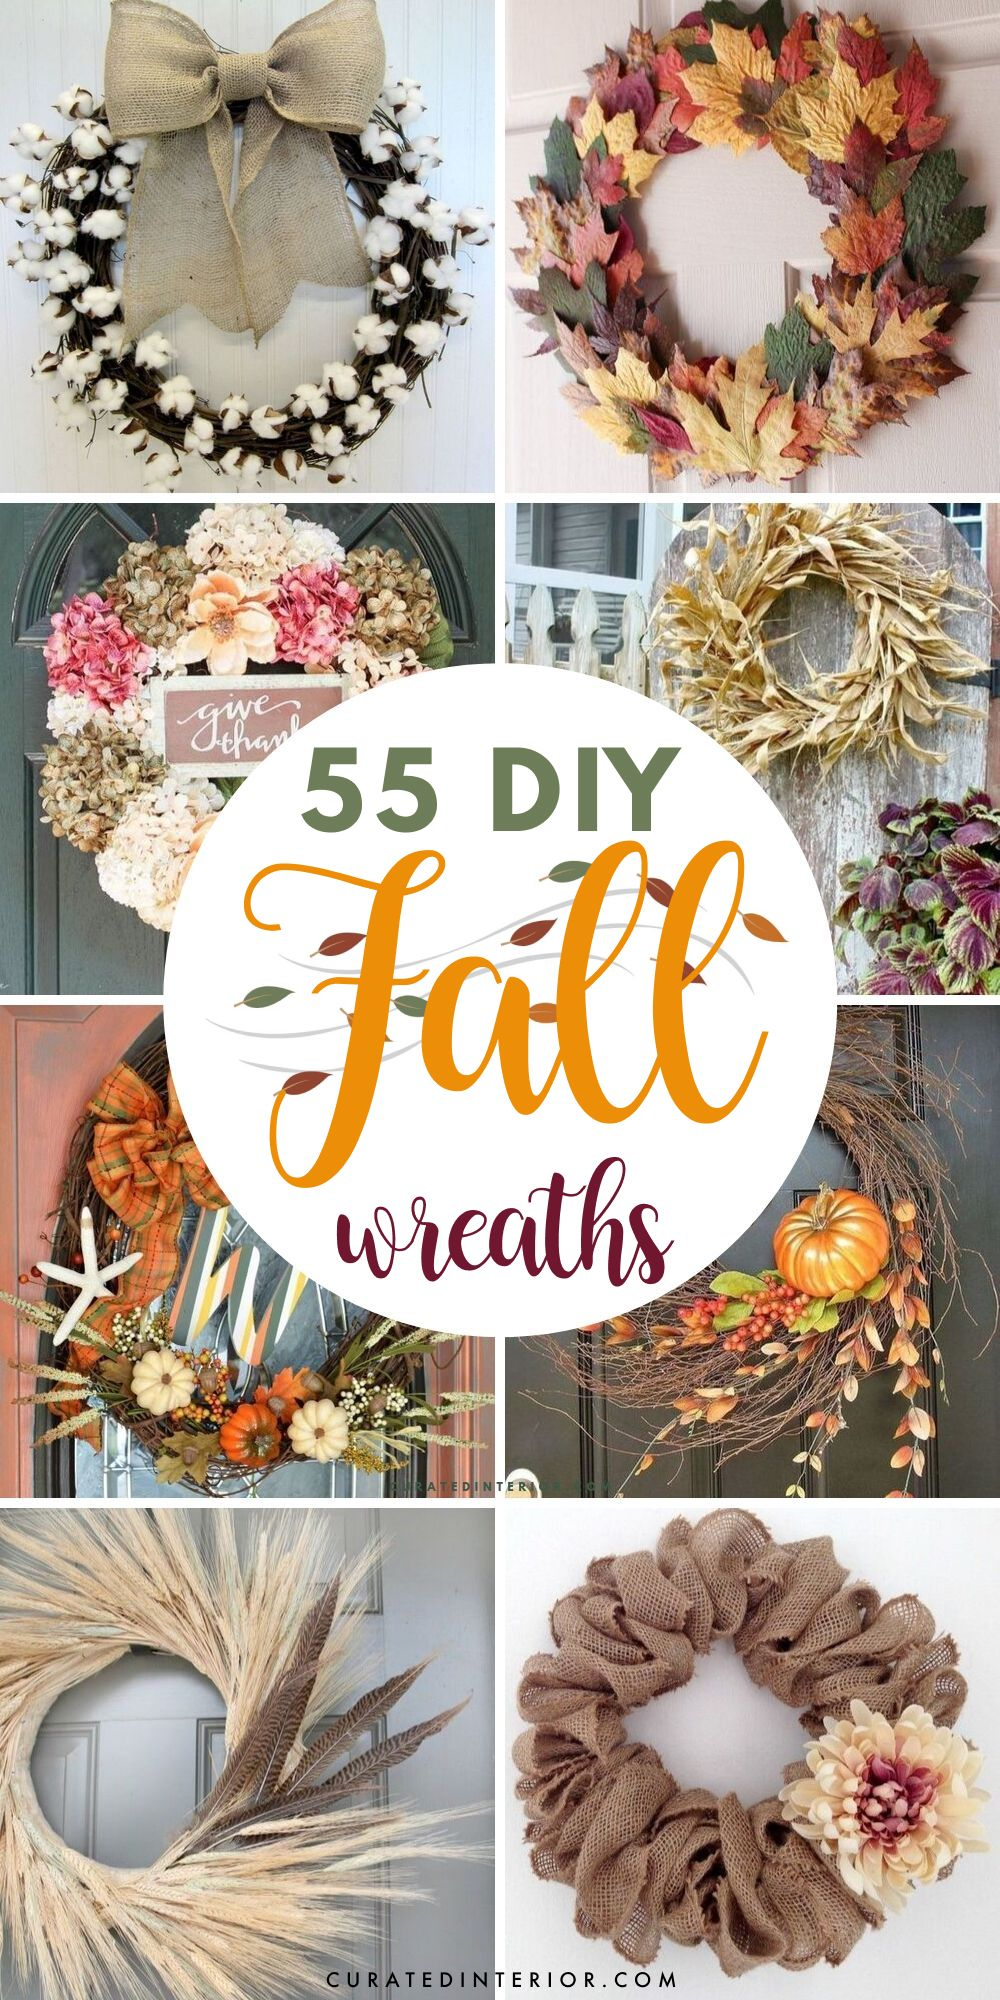 55 Fall DIY Wreaths that are Easy and Cheap to Make!